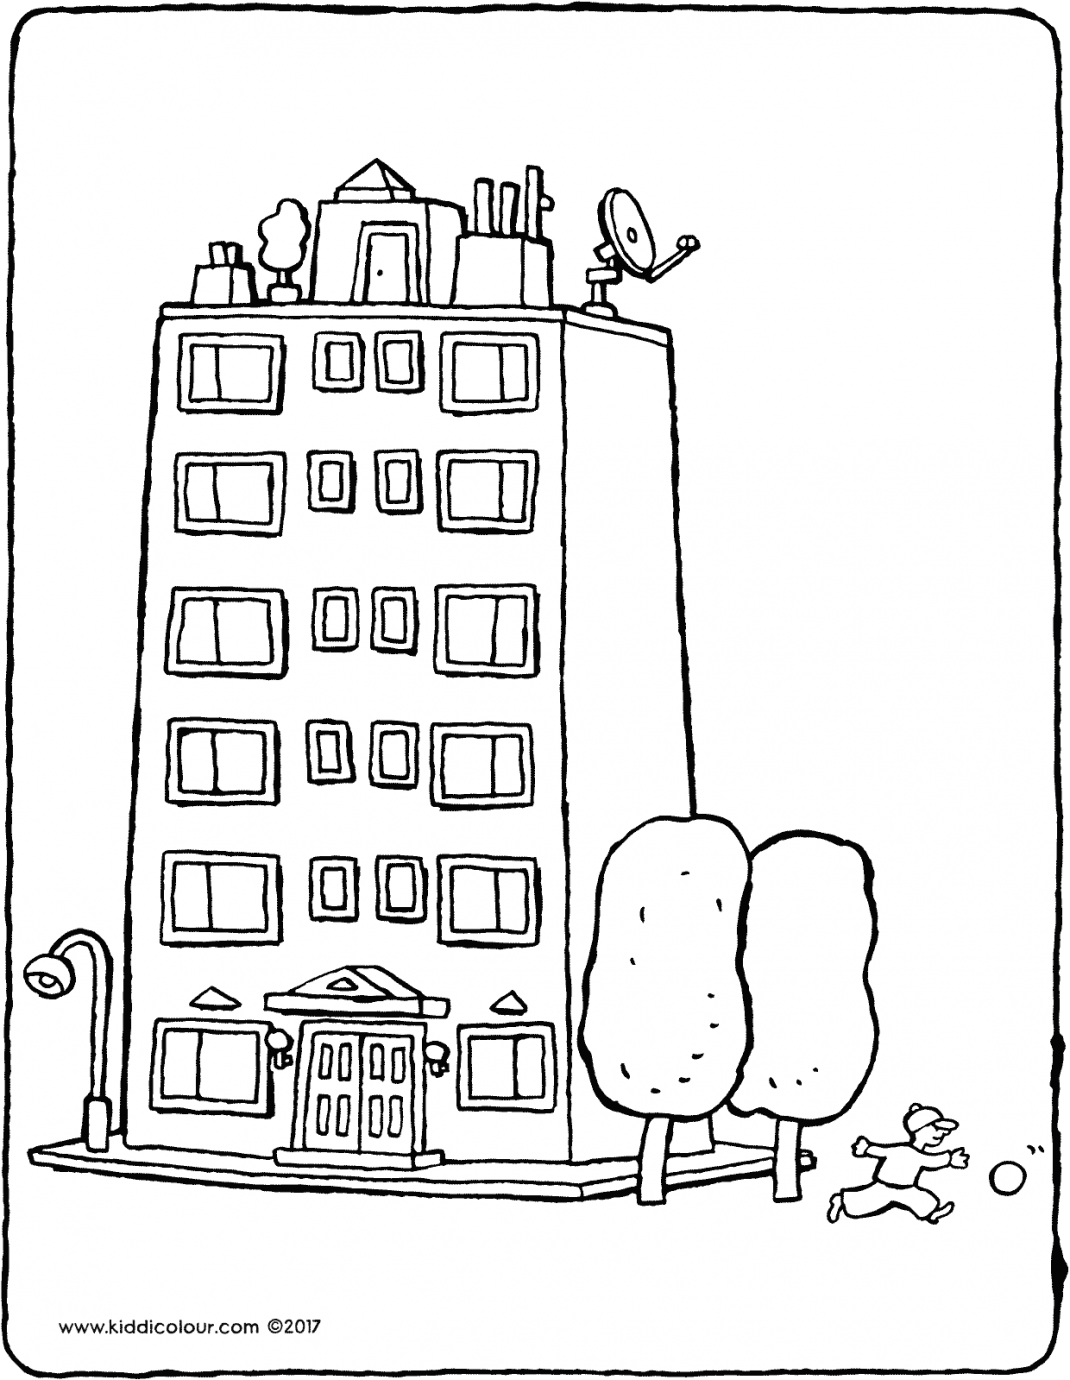 apartment building colouring page drawing picture 01V